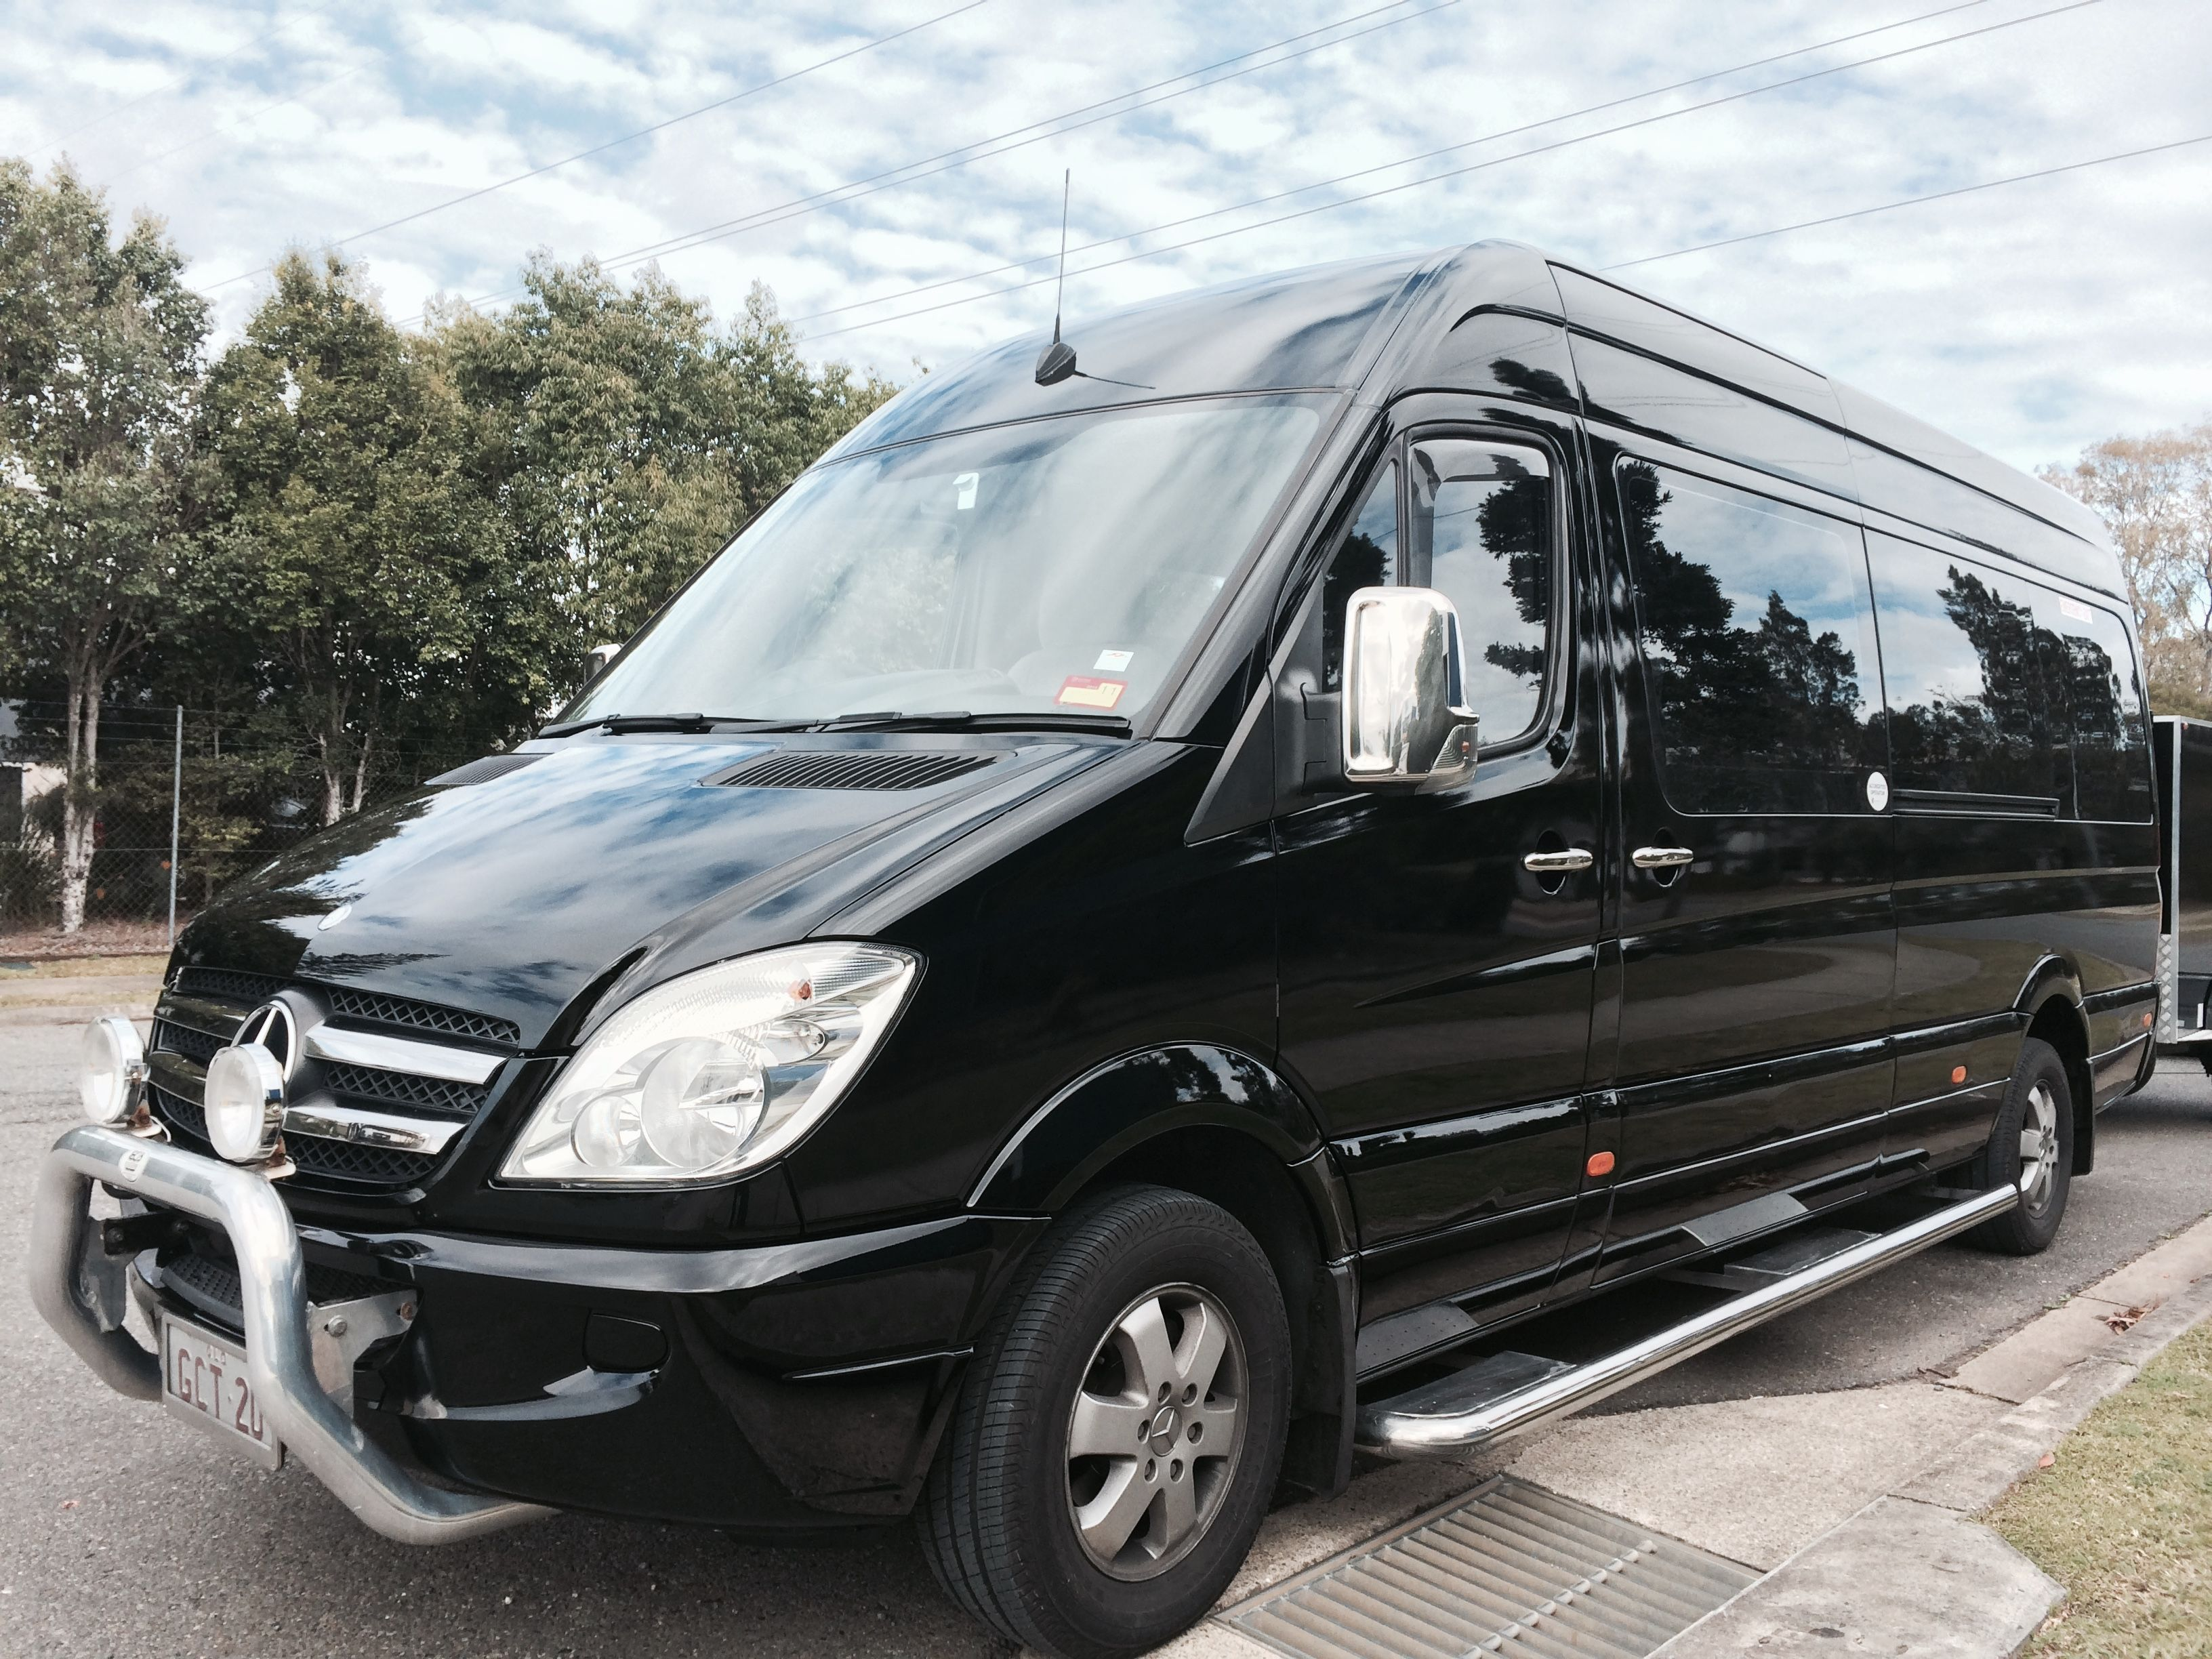 8effc1b1e8 Our 14 Seater Mercedes Benz Sprinter Party Bus proper for all occasions